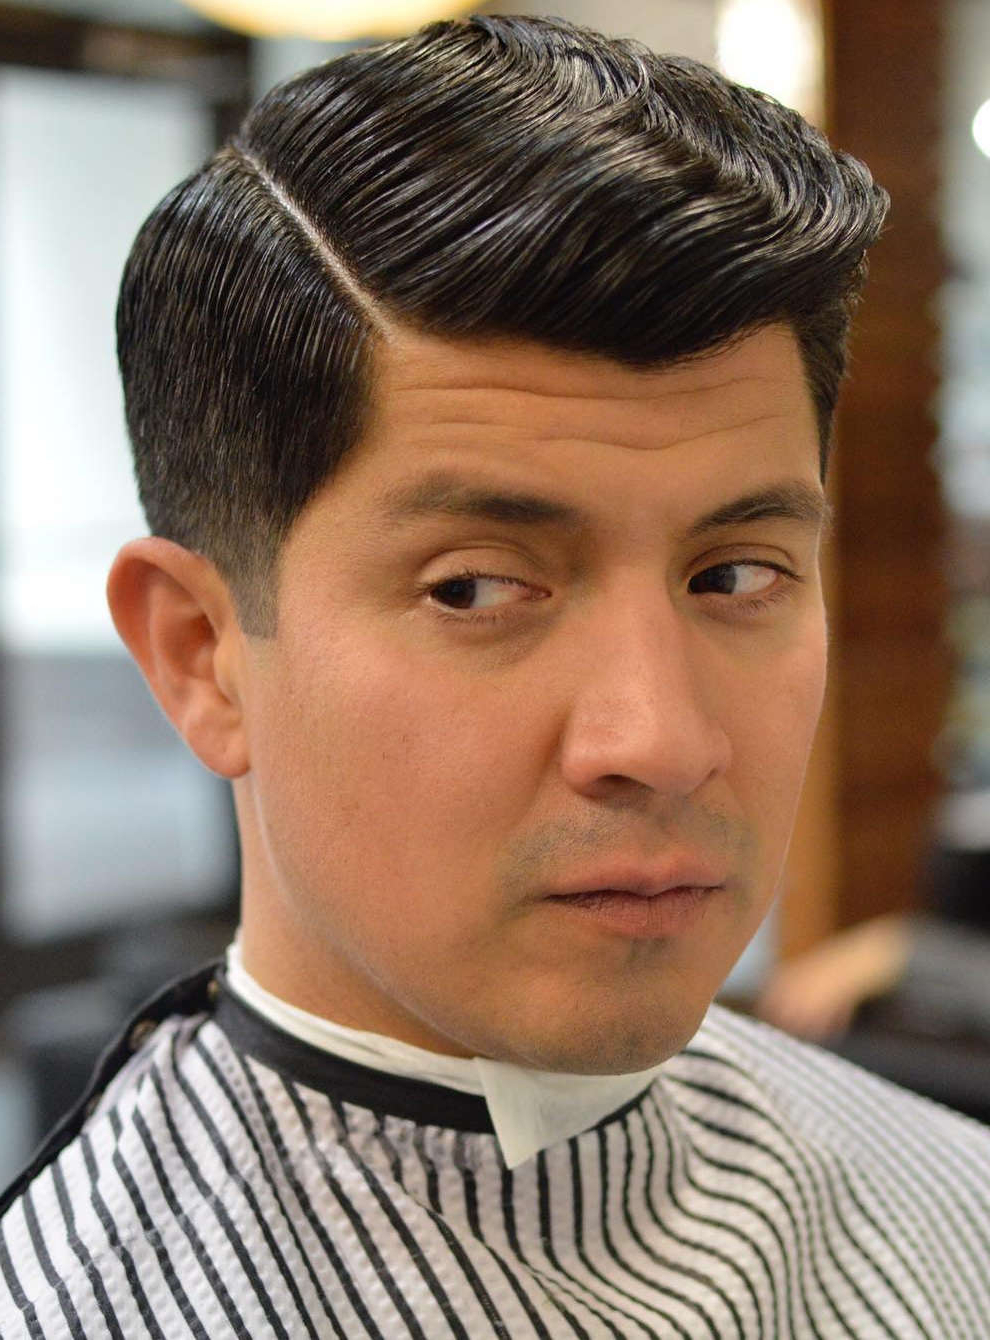 20+ Selected Haircuts For Guys With Round Faces Intended For Brushed Back Hairstyles For Round Face Types (View 11 of 20)